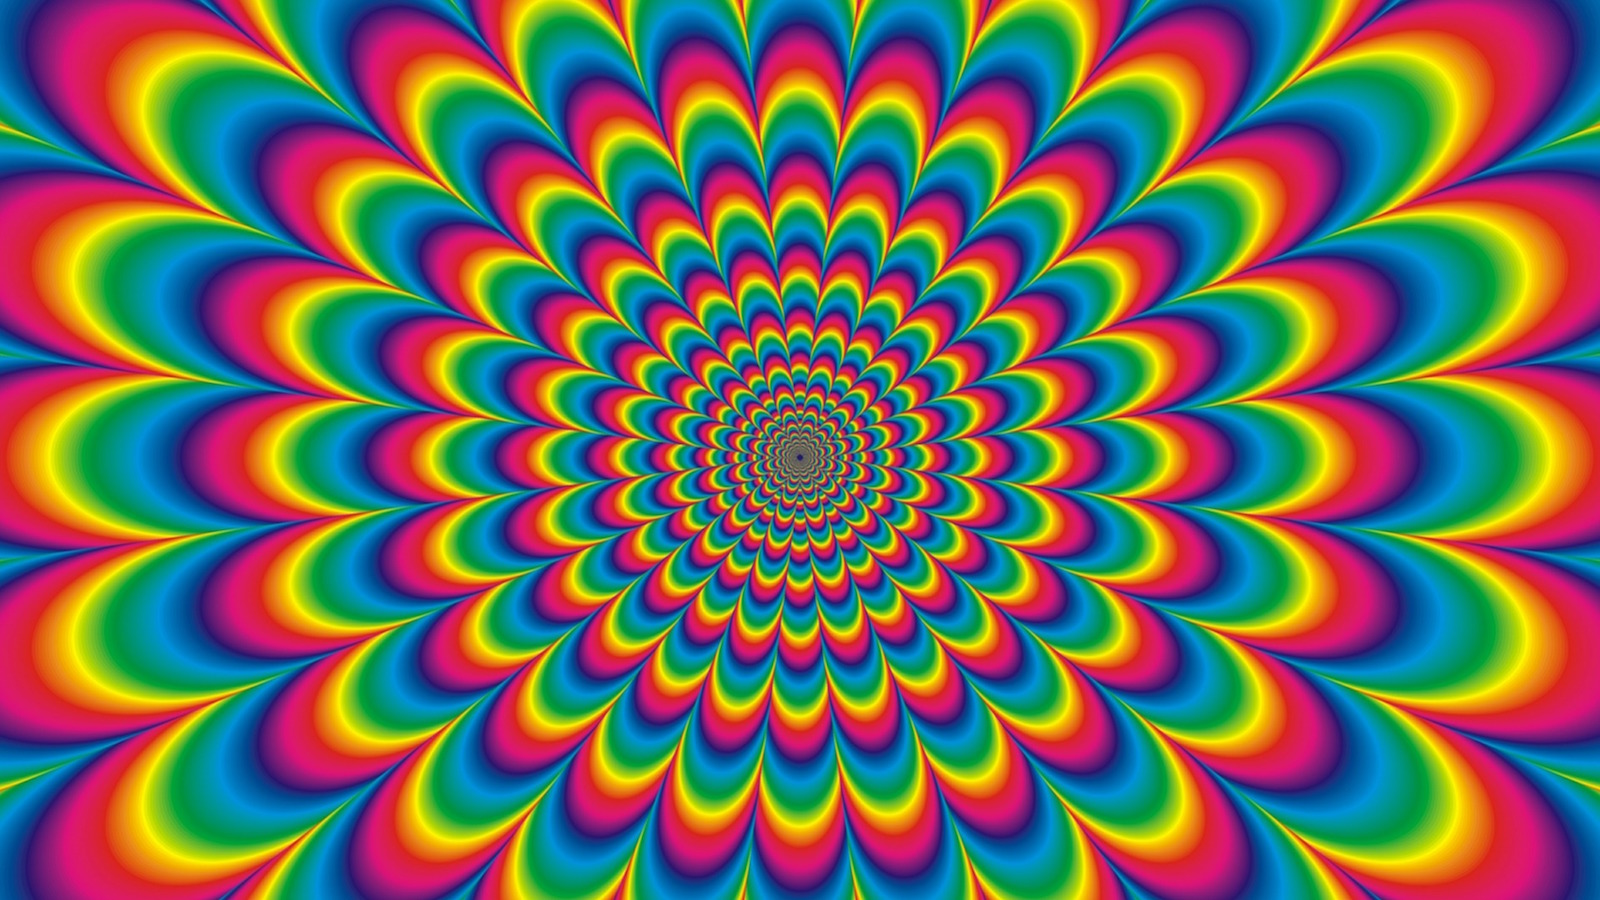 Psilocybin Drug Trials Psychedelics Acid LSD Magic Mushrooms Not Only Make Us More Spiritual And Religious They Healthier Too Quartz